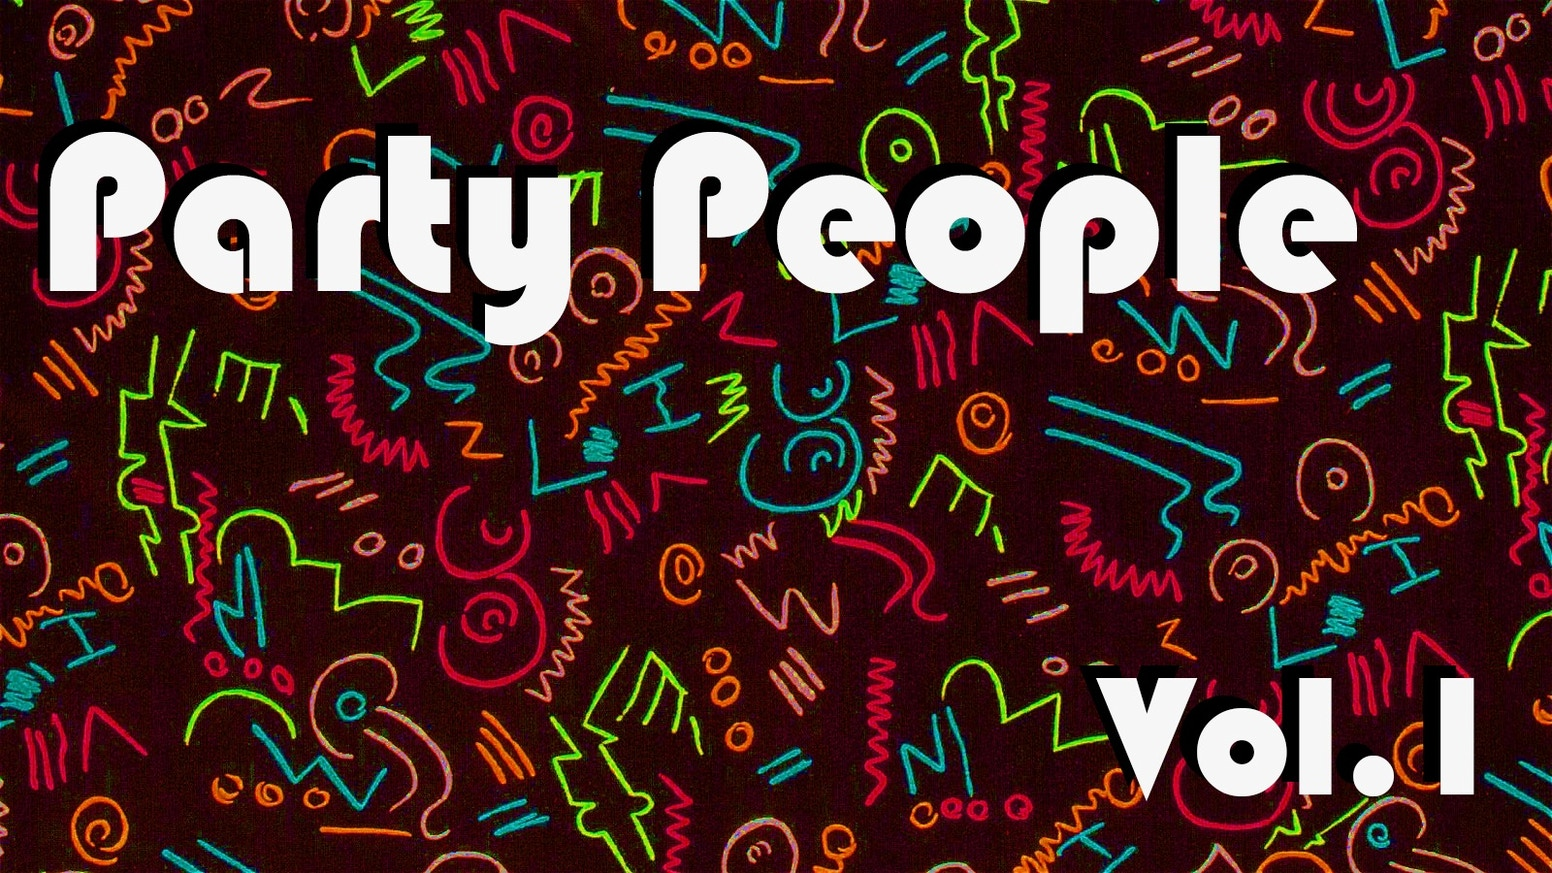 Party People Vol  1 by Hayley Hodson » That's a wrap